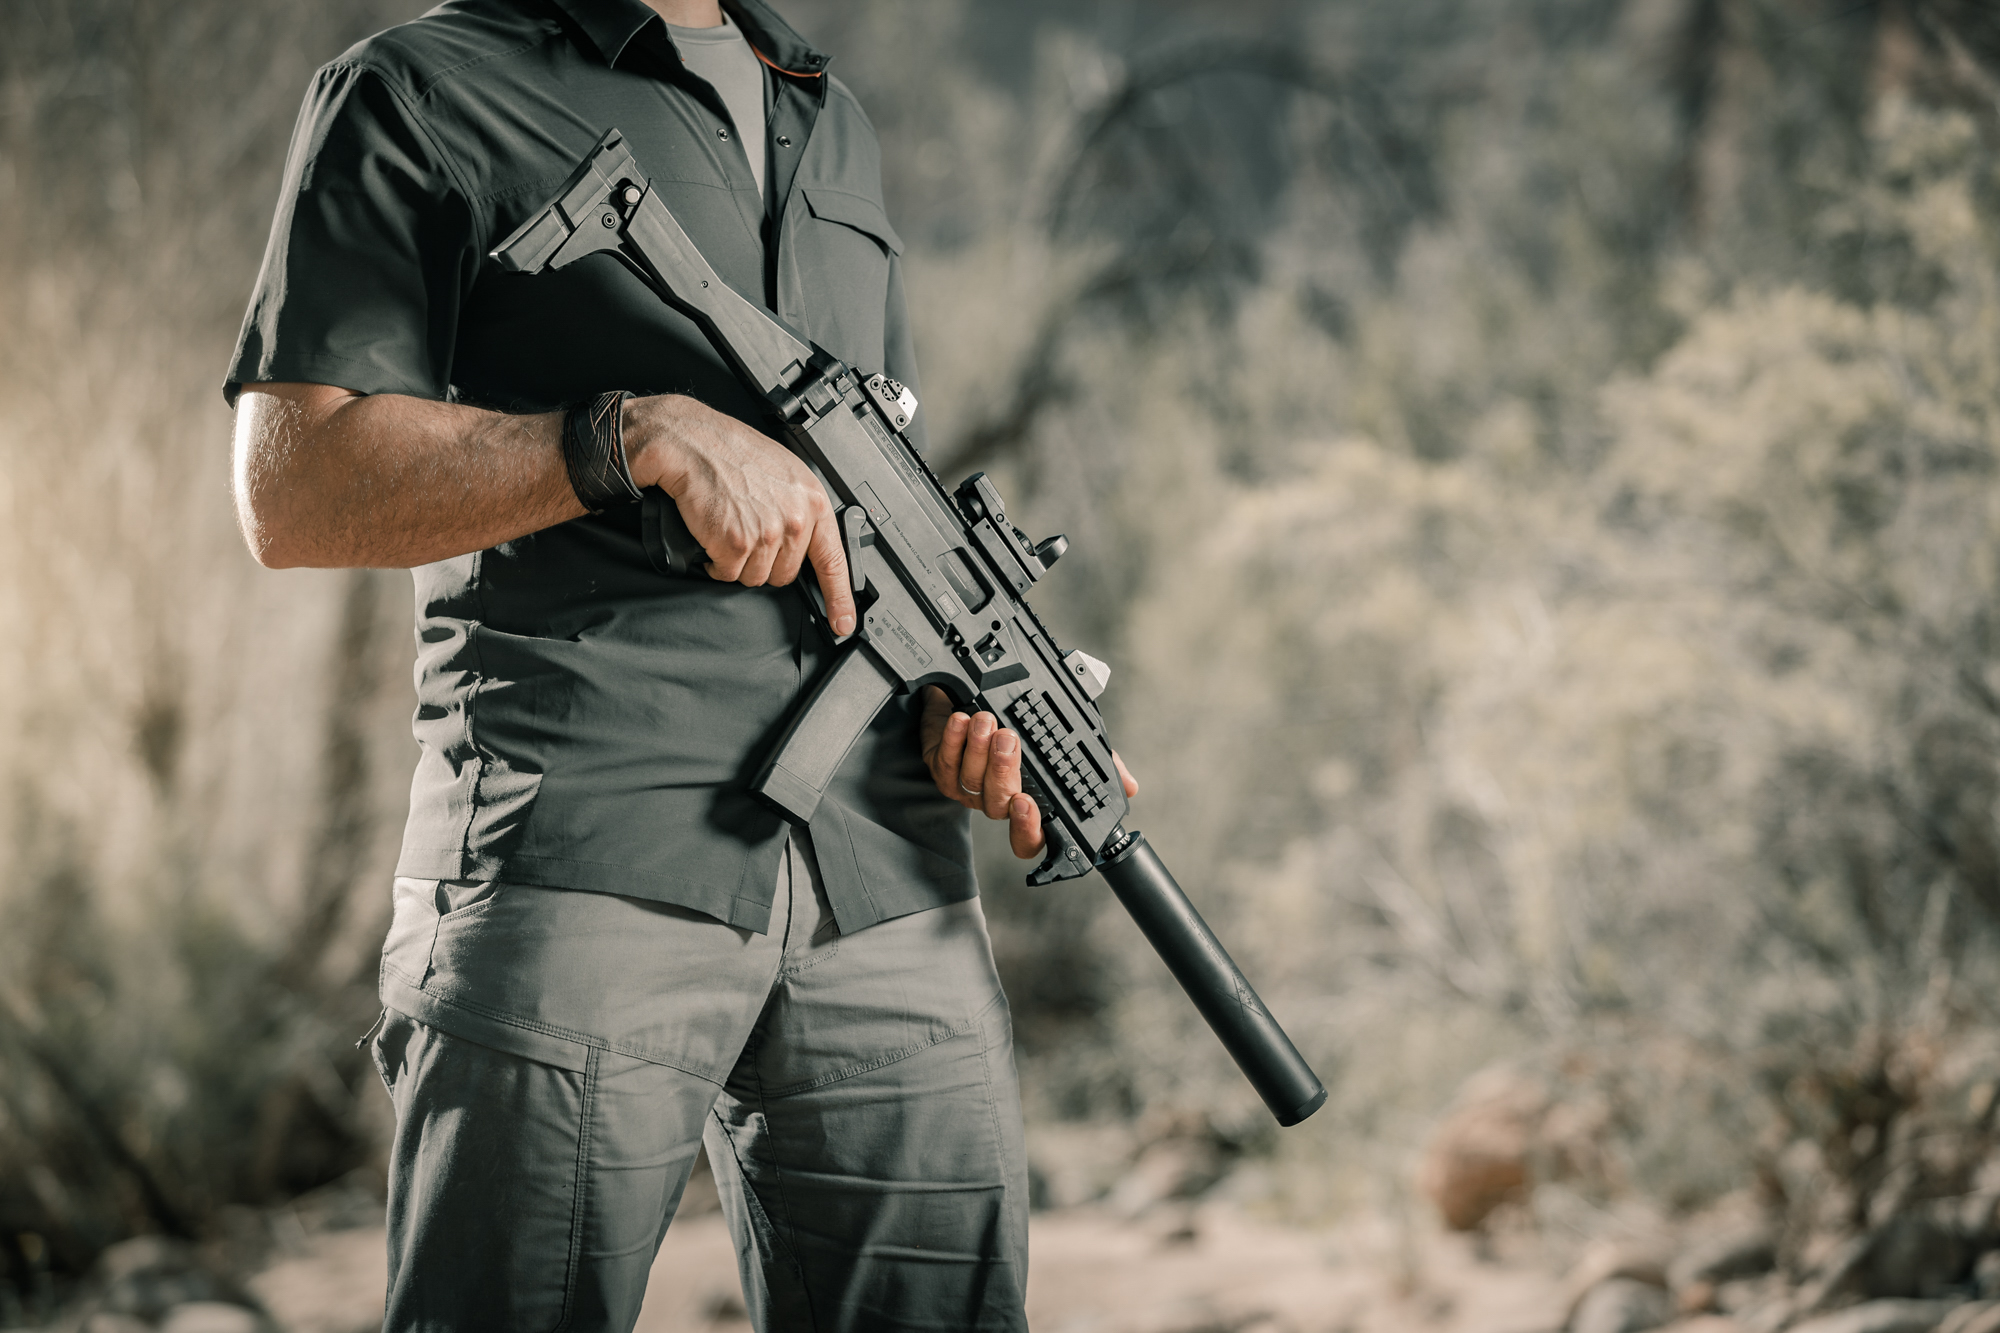 Crowe Syndicate Arms | Tactical Lifestyle Photoshoot